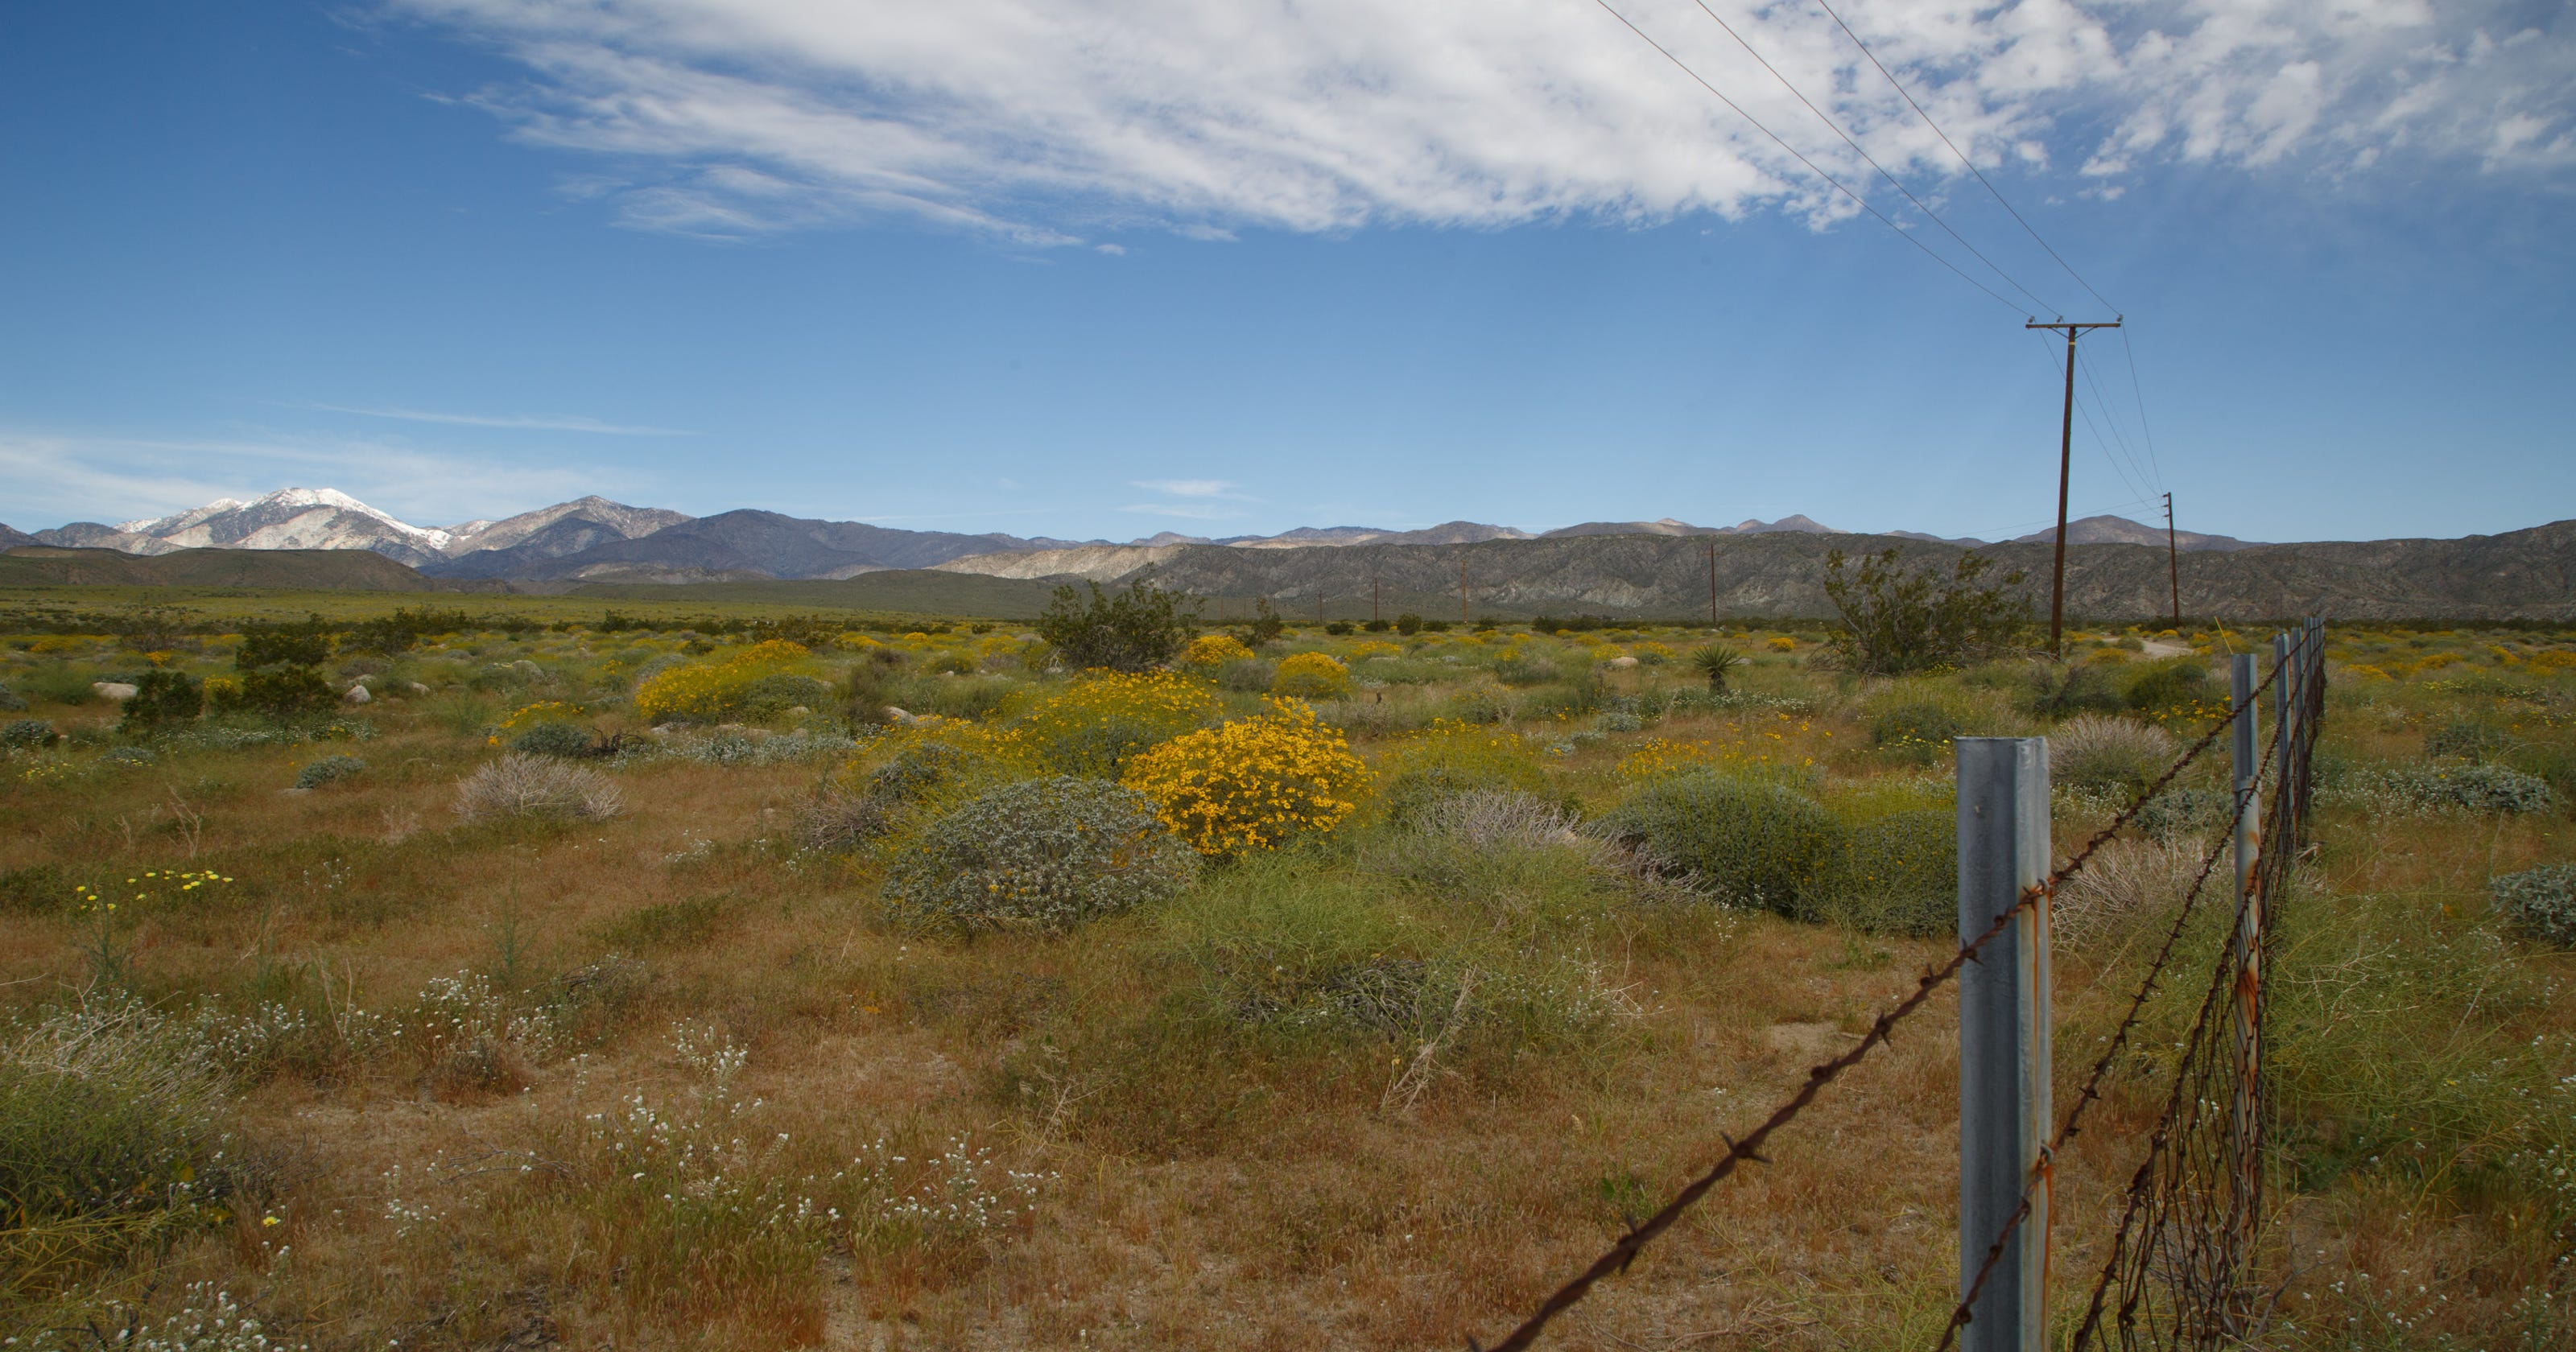 The Sierra Club and the Center for Biological Diversity